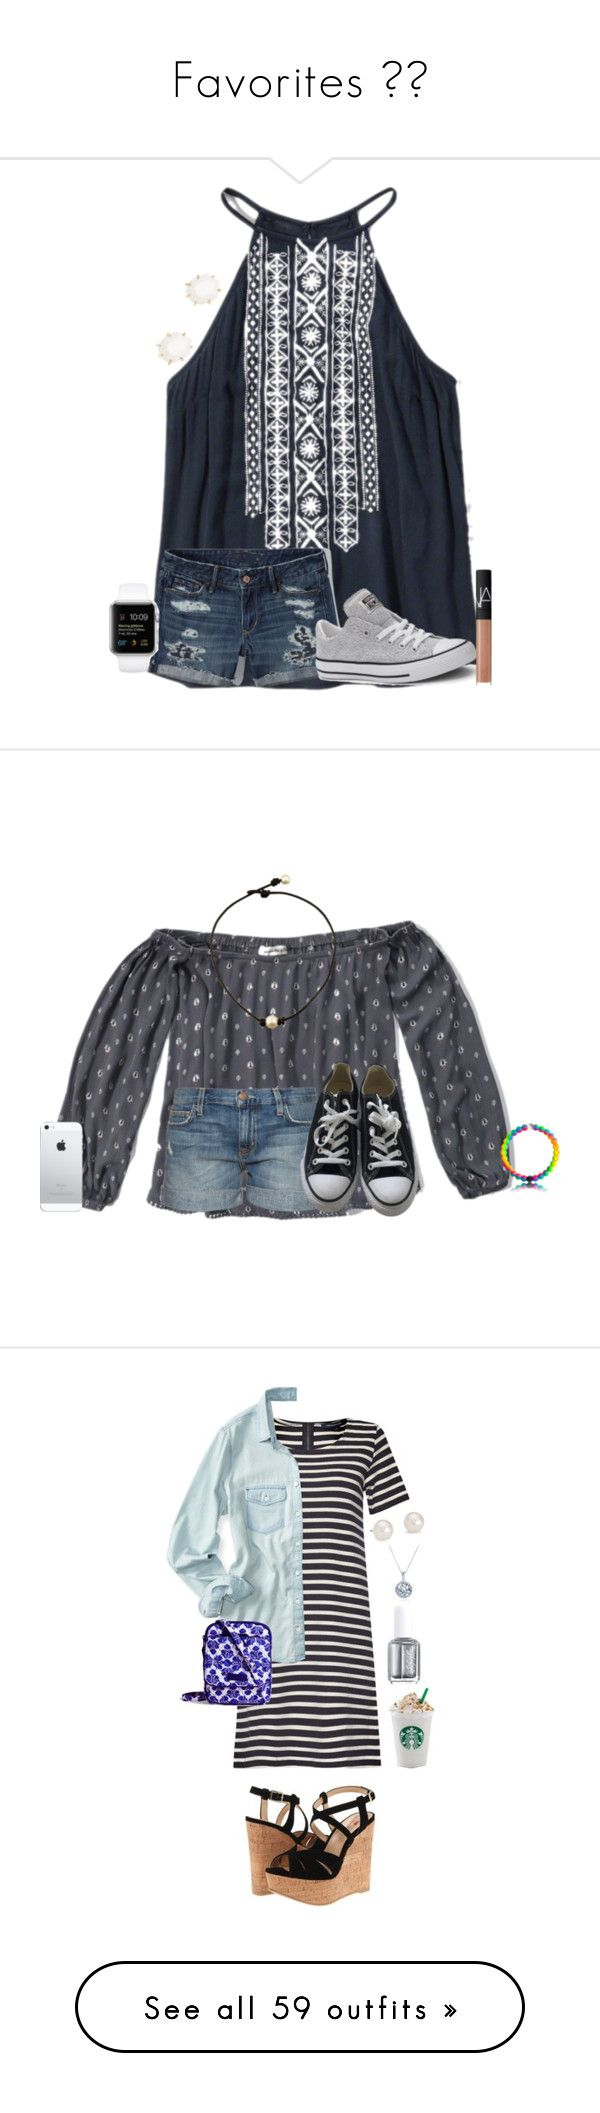 """""""Favorites """" by leighannalane ❤ liked on Polyvore featuring Abercrombie & Fitch, Converse, Kendra Scott, NARS Cosmetics, Current/Elliott, French Con…"""